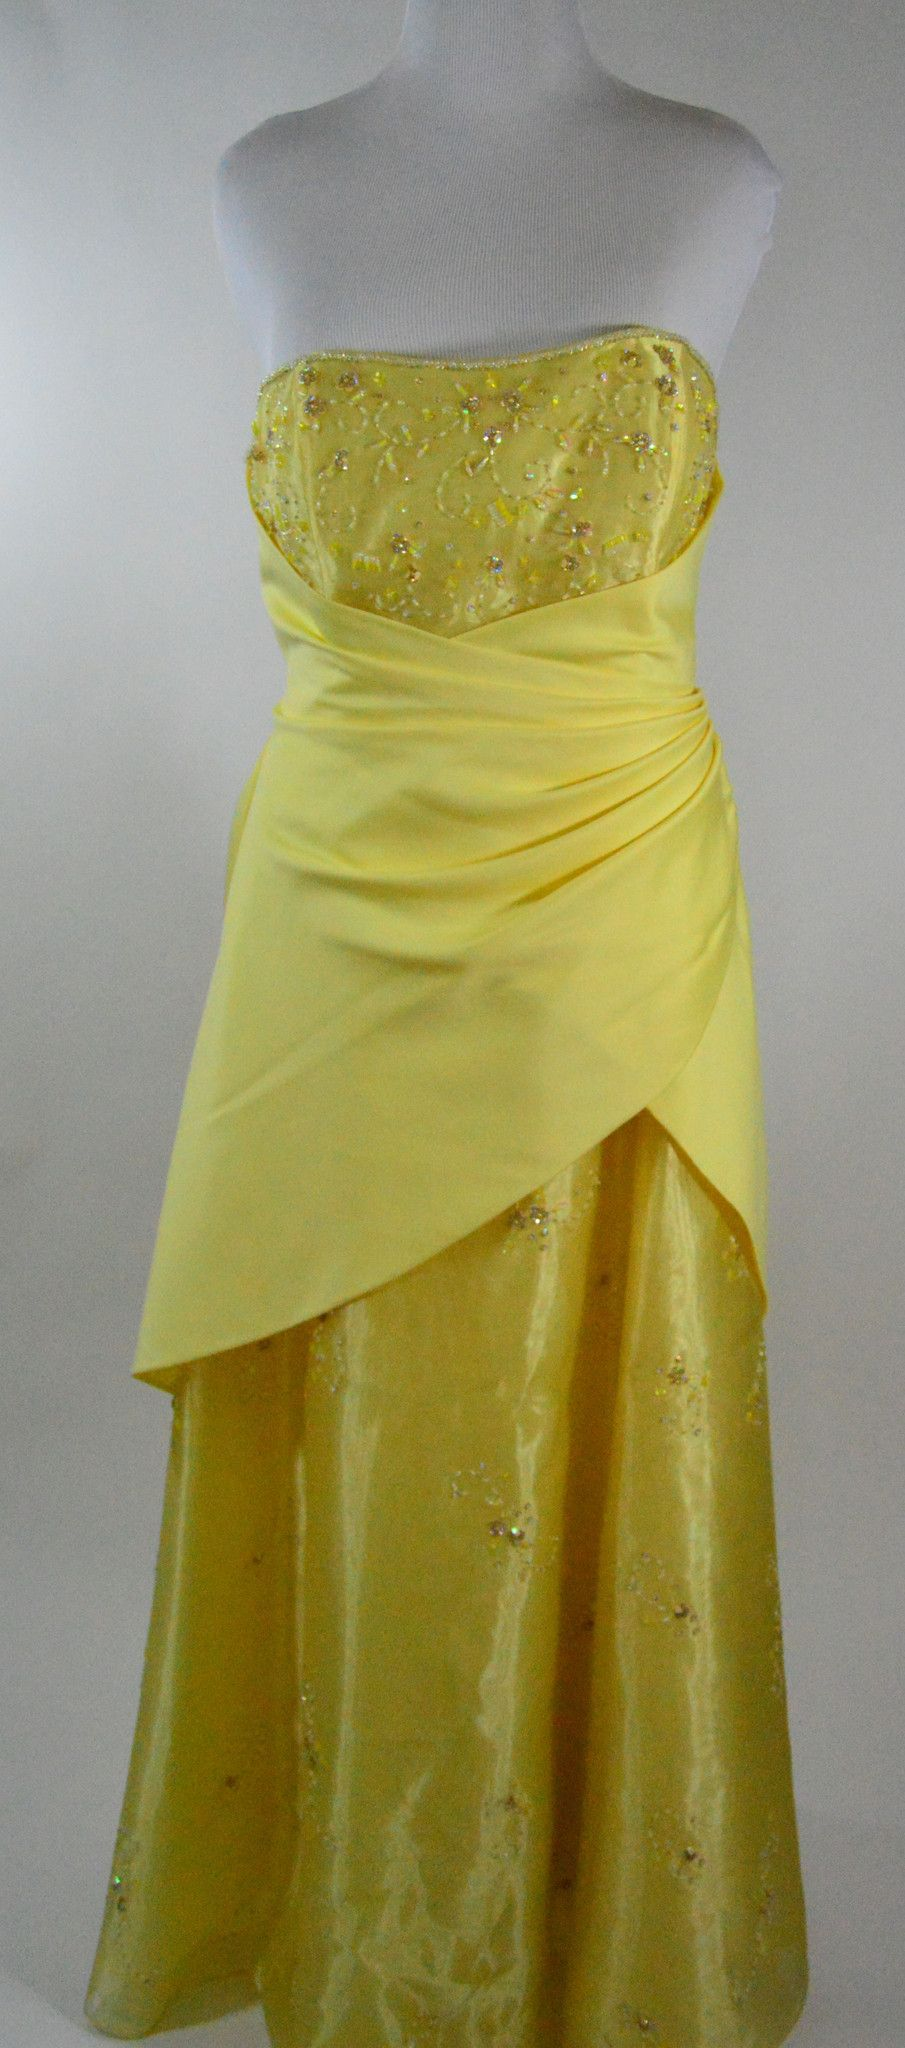 David's Bridal - Yellow - Size 20